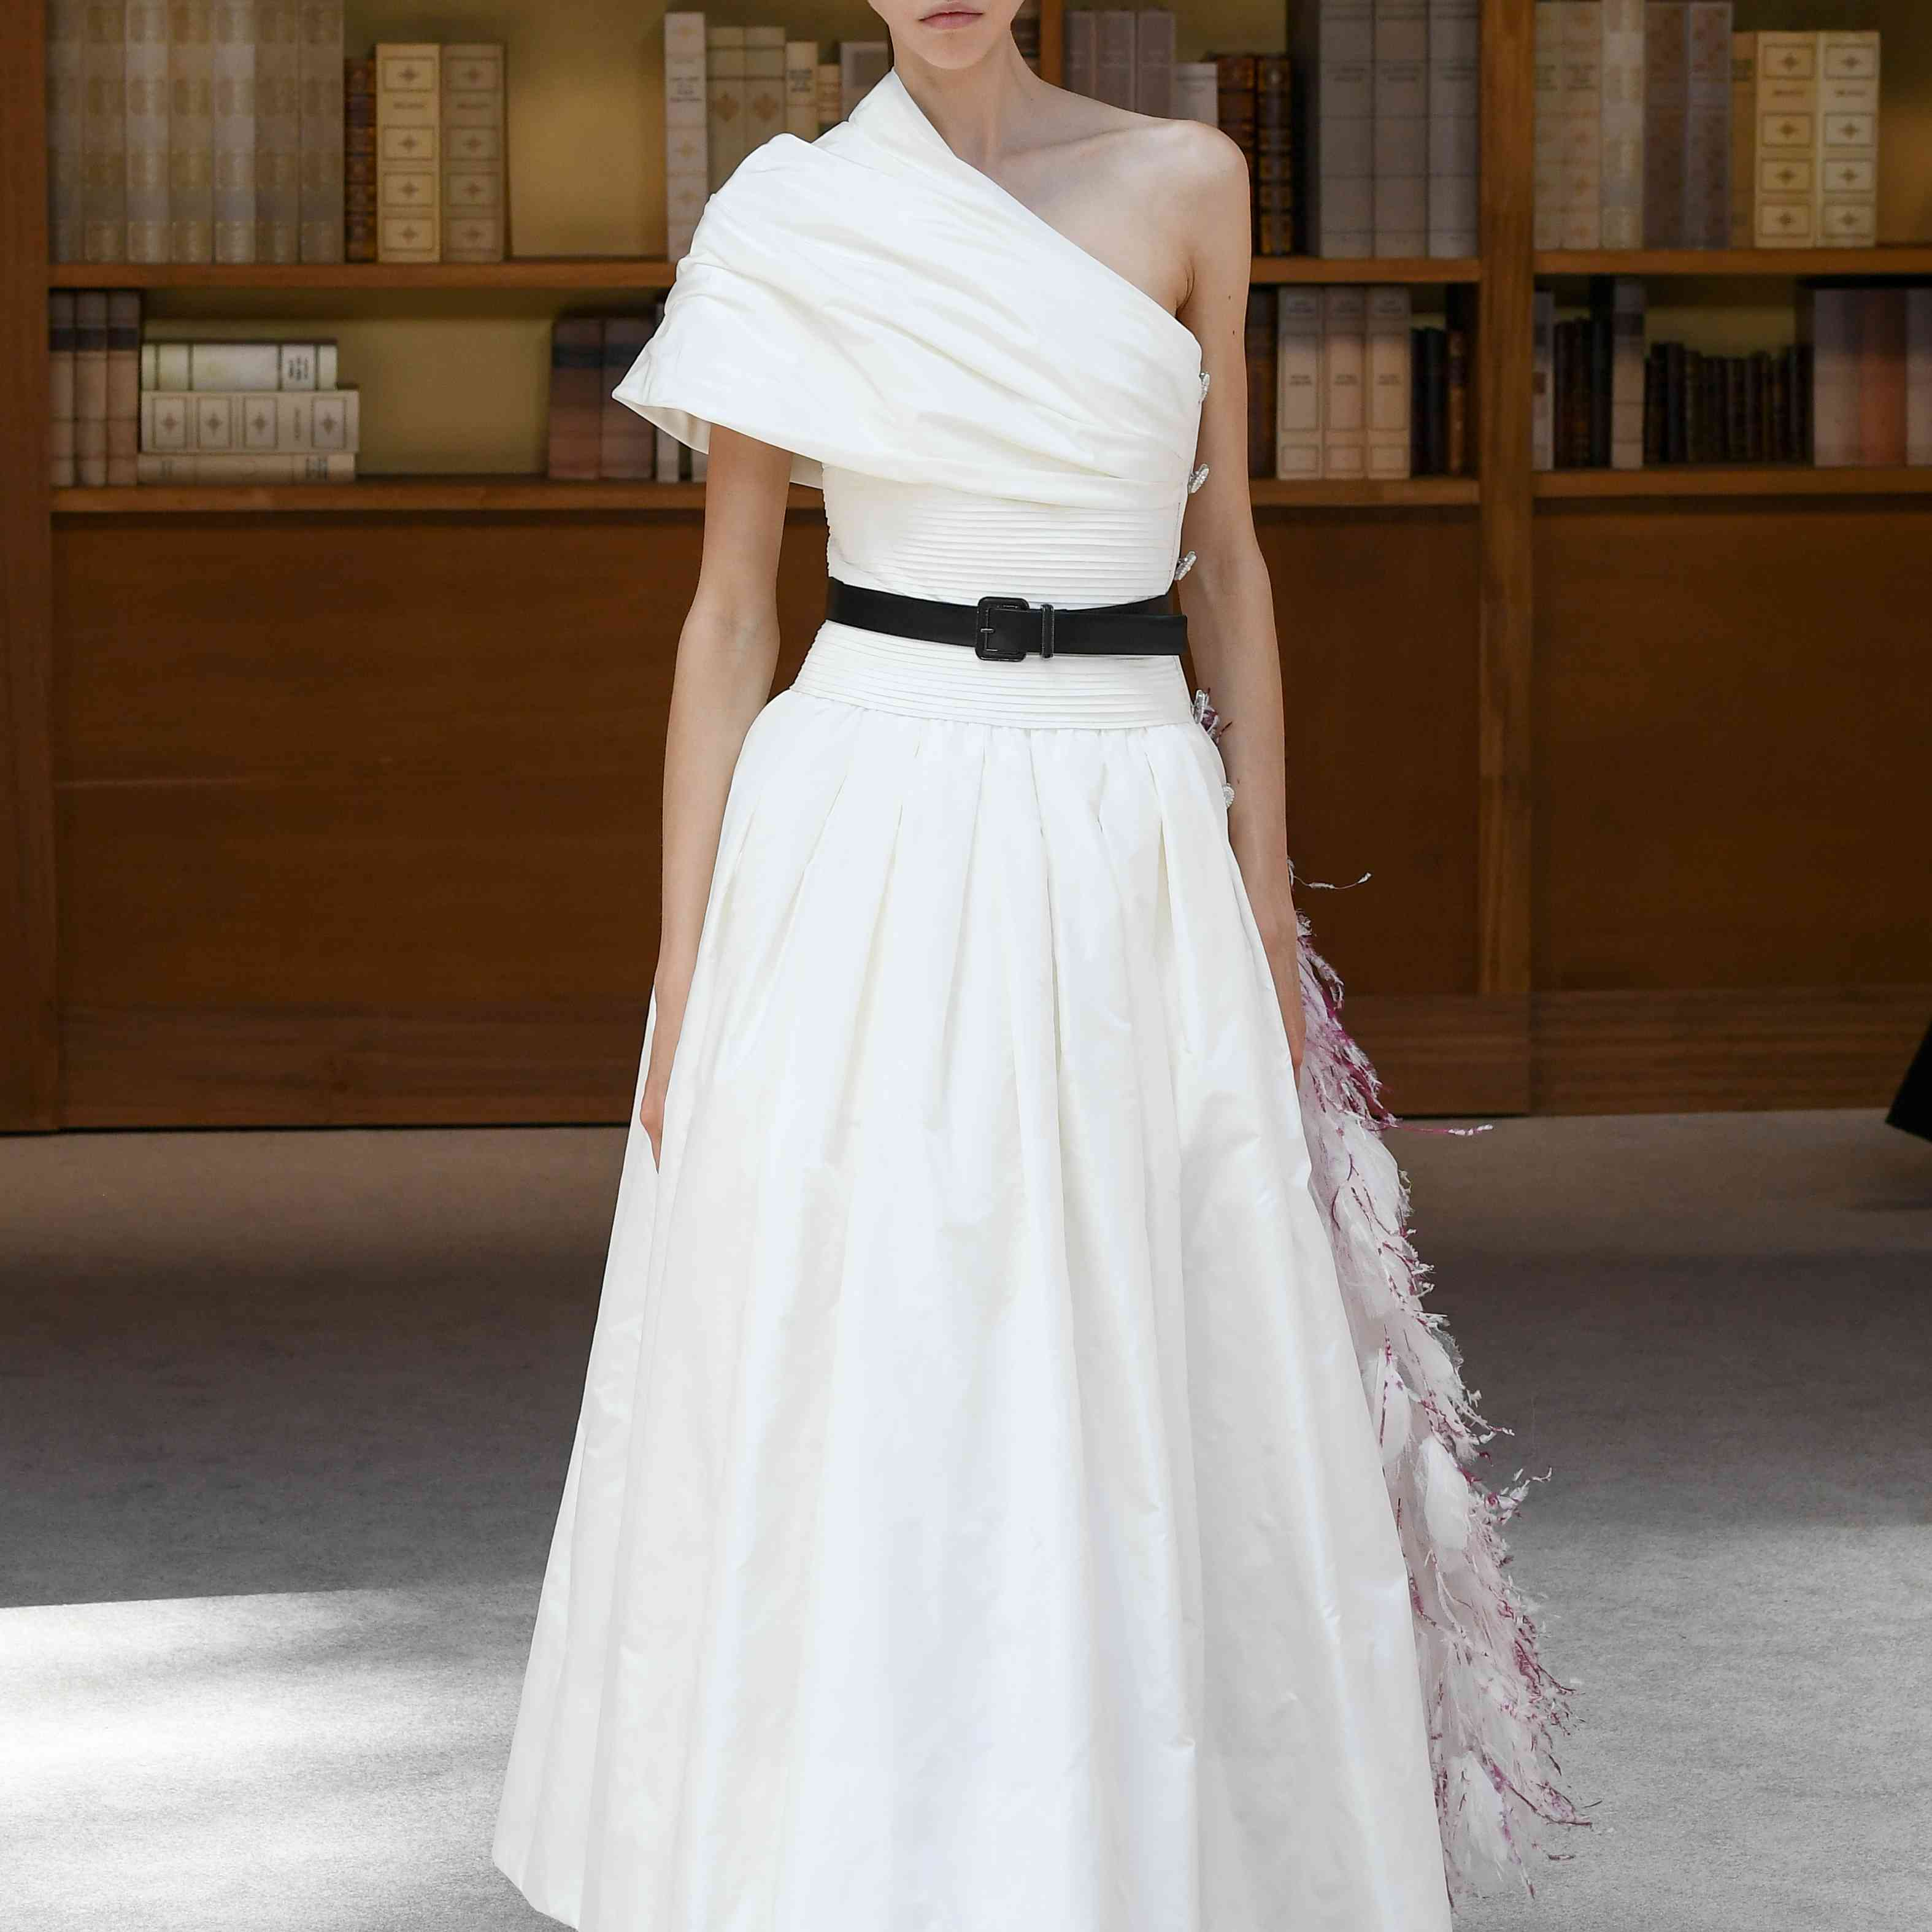 A model in a one-shoulder white dress with black belt